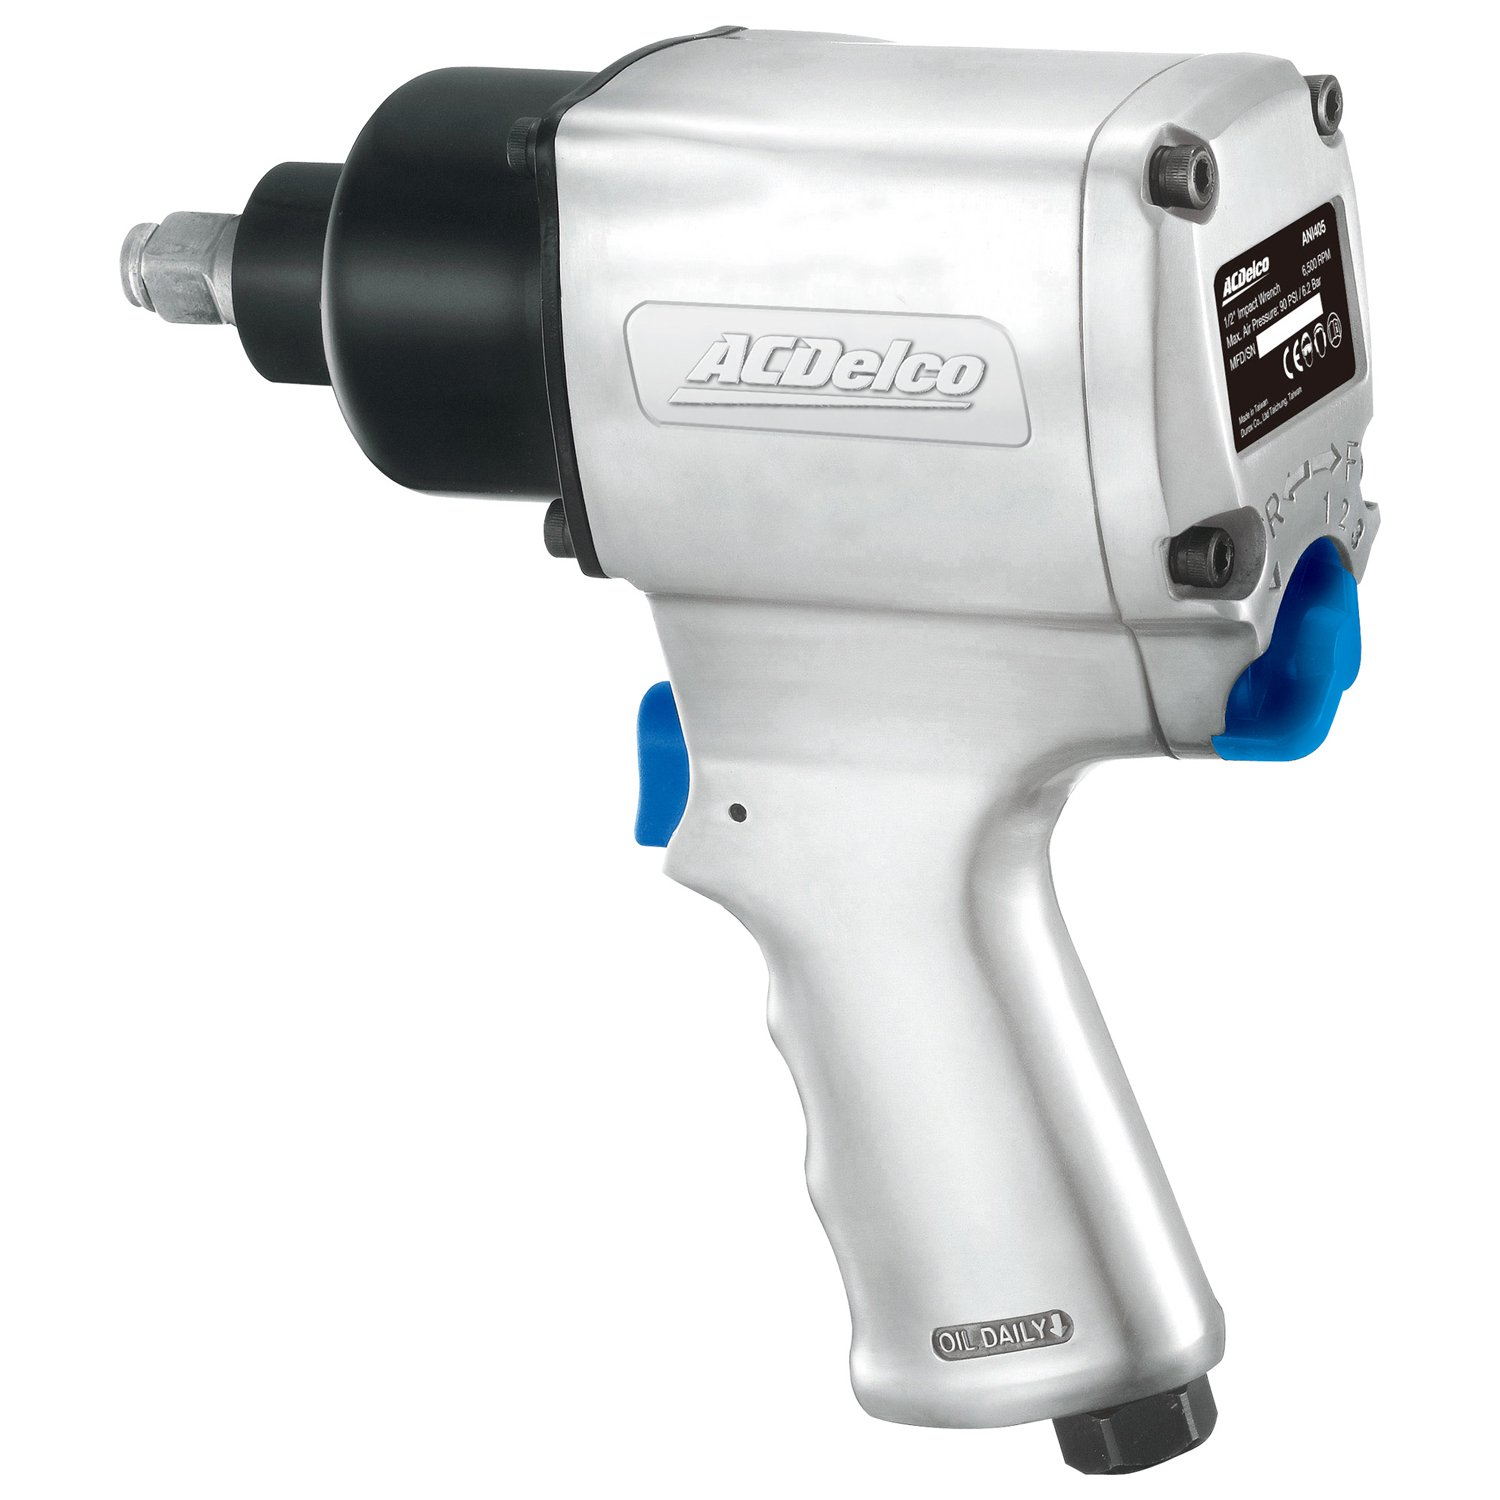 ACDelco ANI405 Heavy Duty Twin Hammer 1/2'' Air Impact Wrench Pneumatic Tools